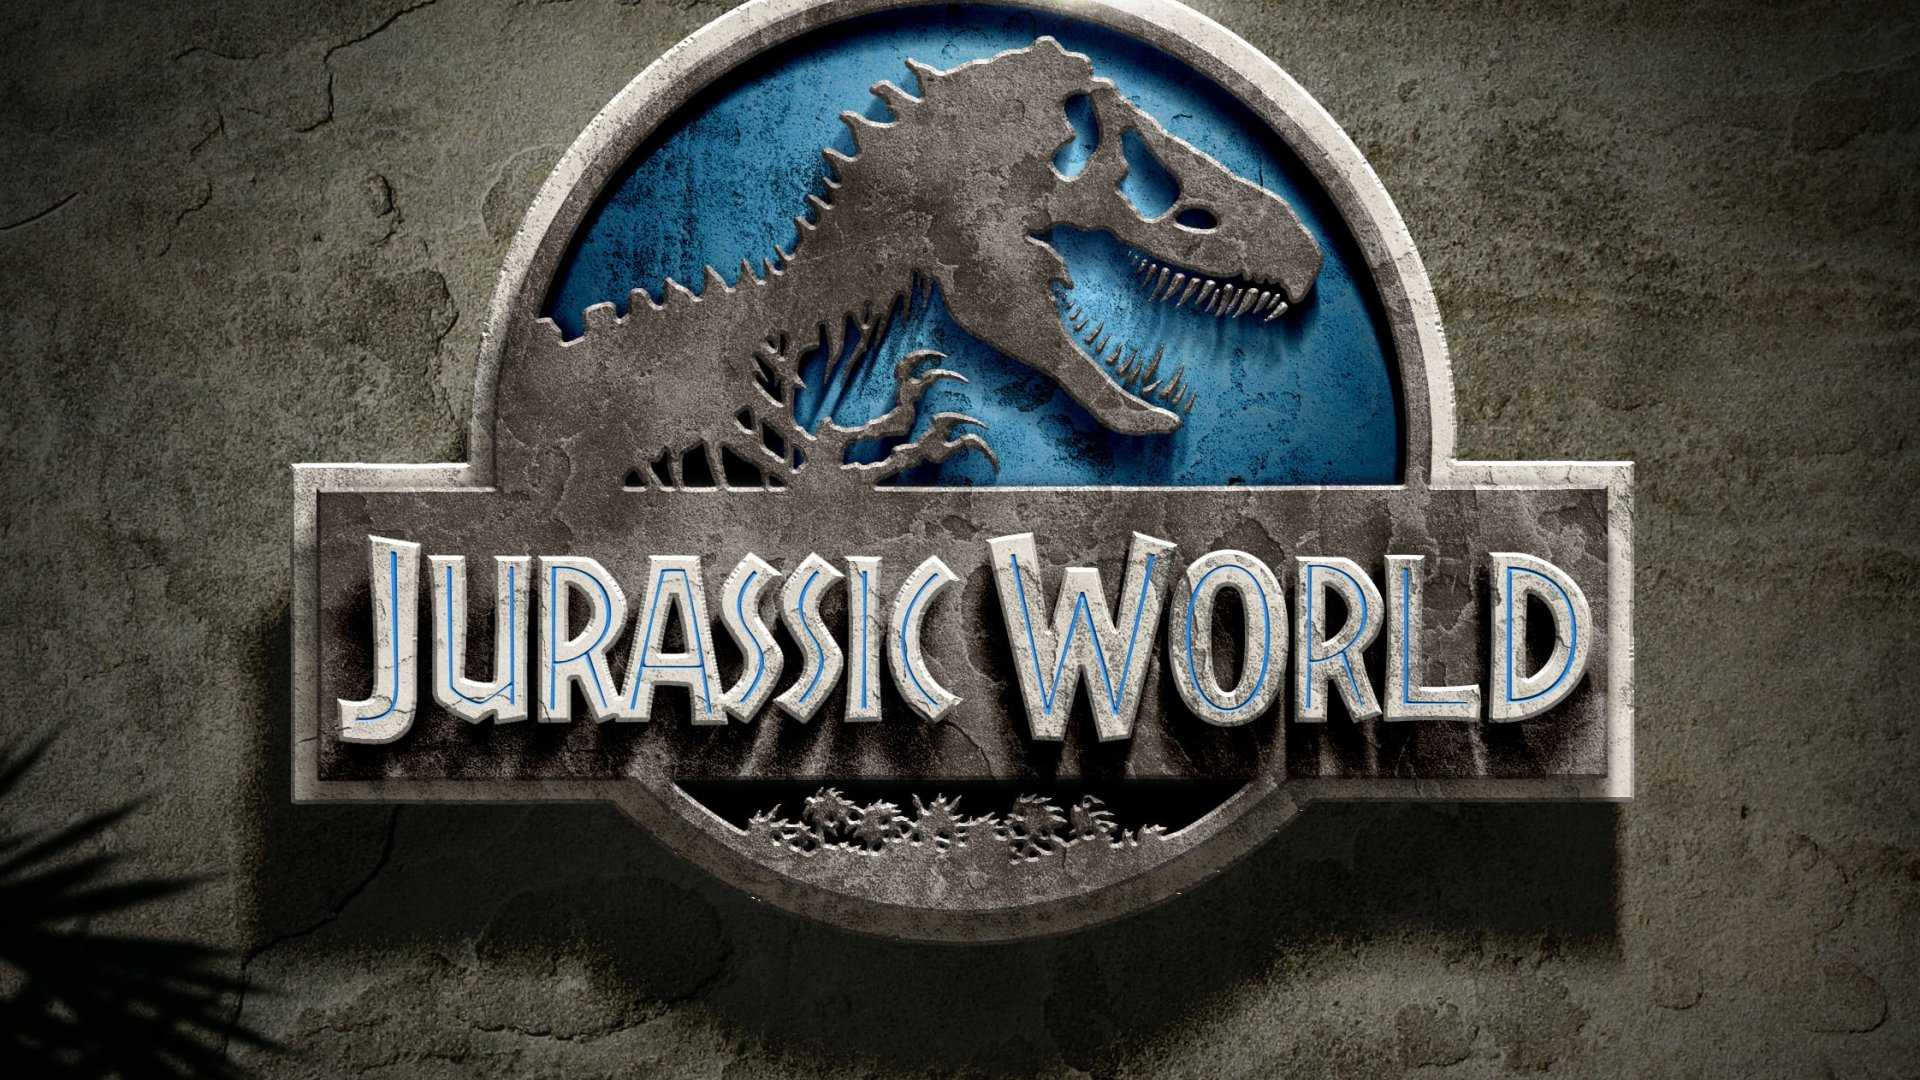 Jurassic World: The park is open